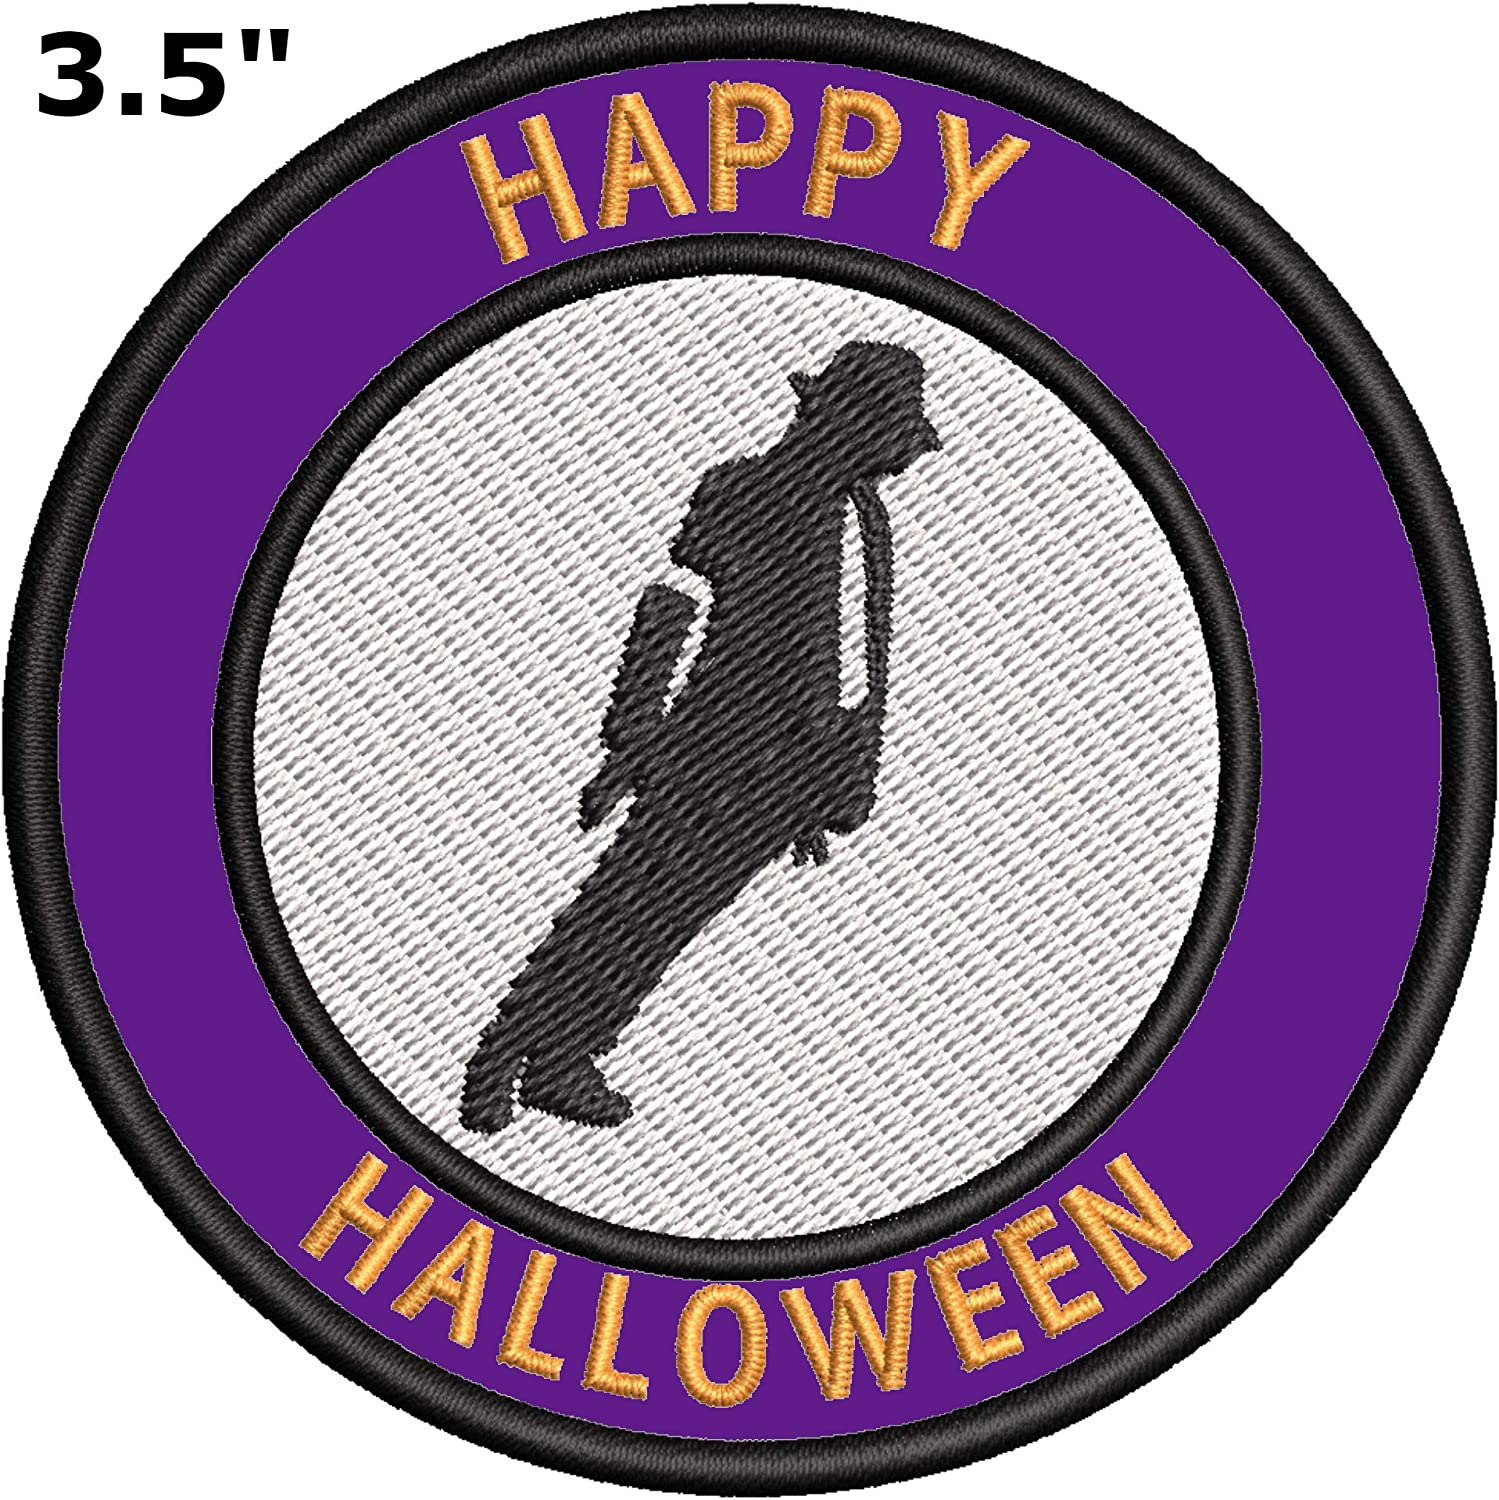 Happy Halloween Michael Jackson 3 5 Embroidered Iron Or Sew On Patch Horror Movie Tv Scary Series Souvenir Travel Vacation Witch Broomstick Clown It Zombie Cat Cap Hats Bags Badge